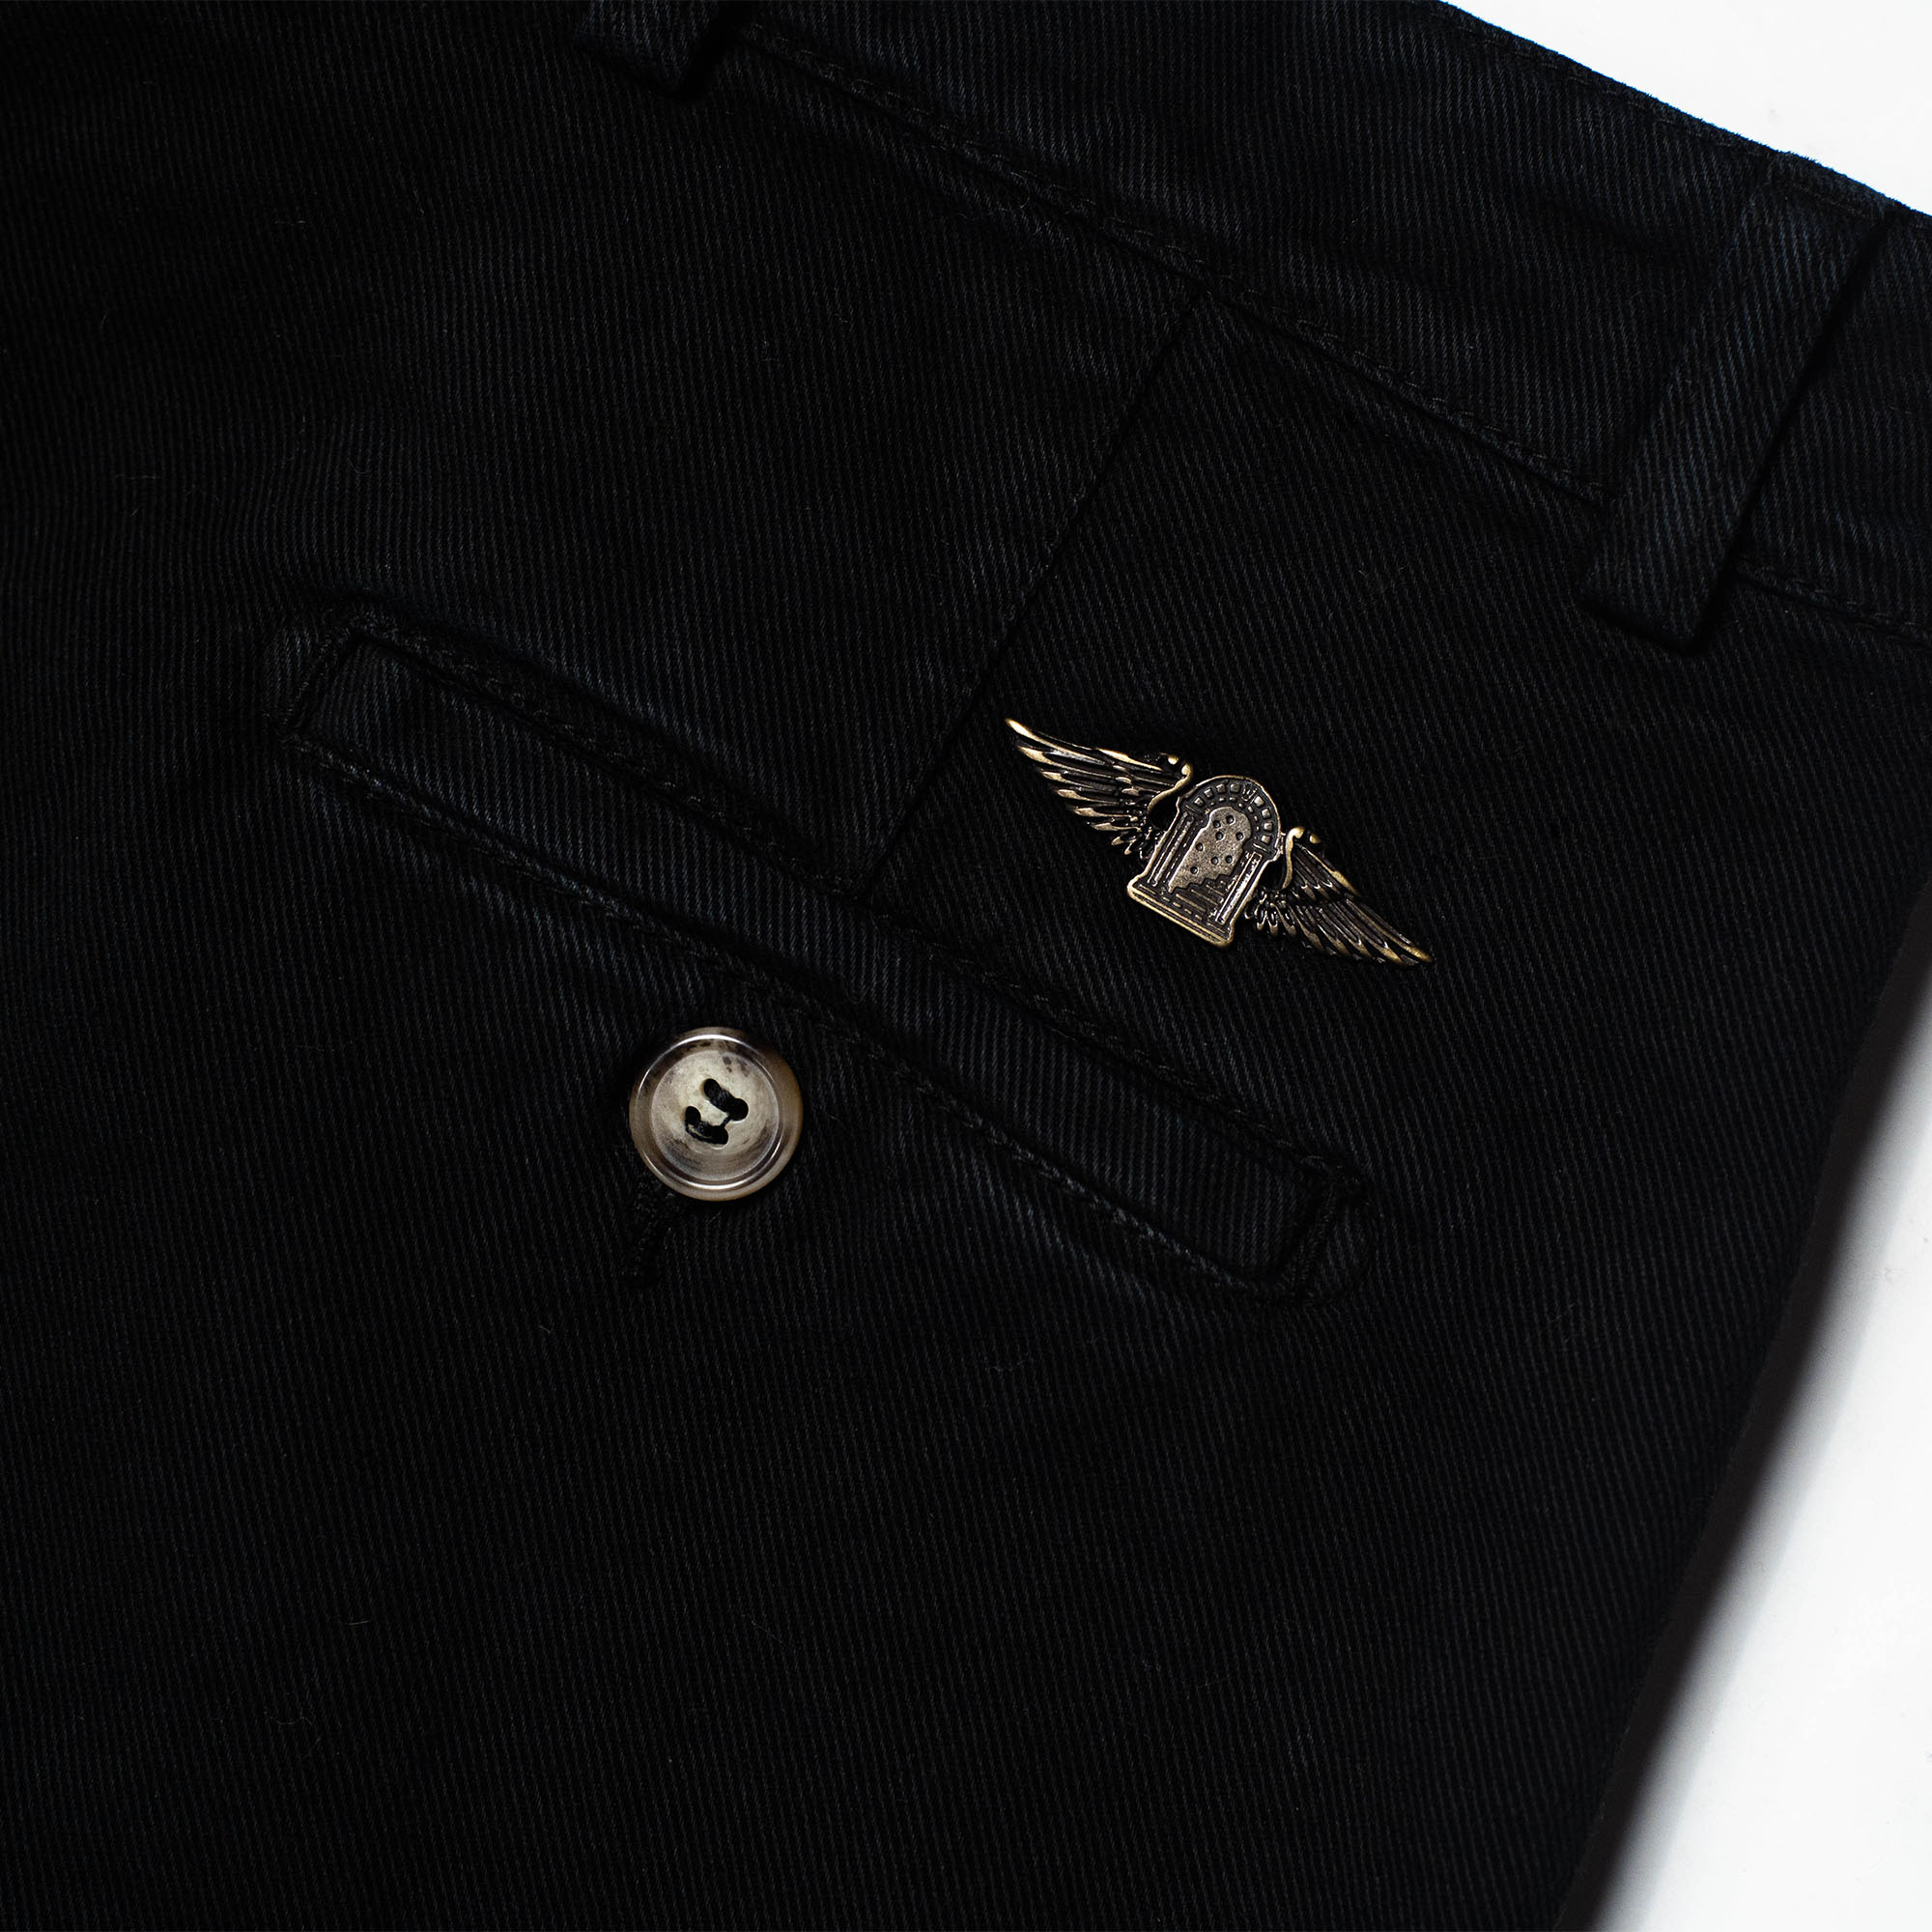 shangri-la-heritage-explorator-black-cotton-twill-pants-still-life-back-pocket-logo